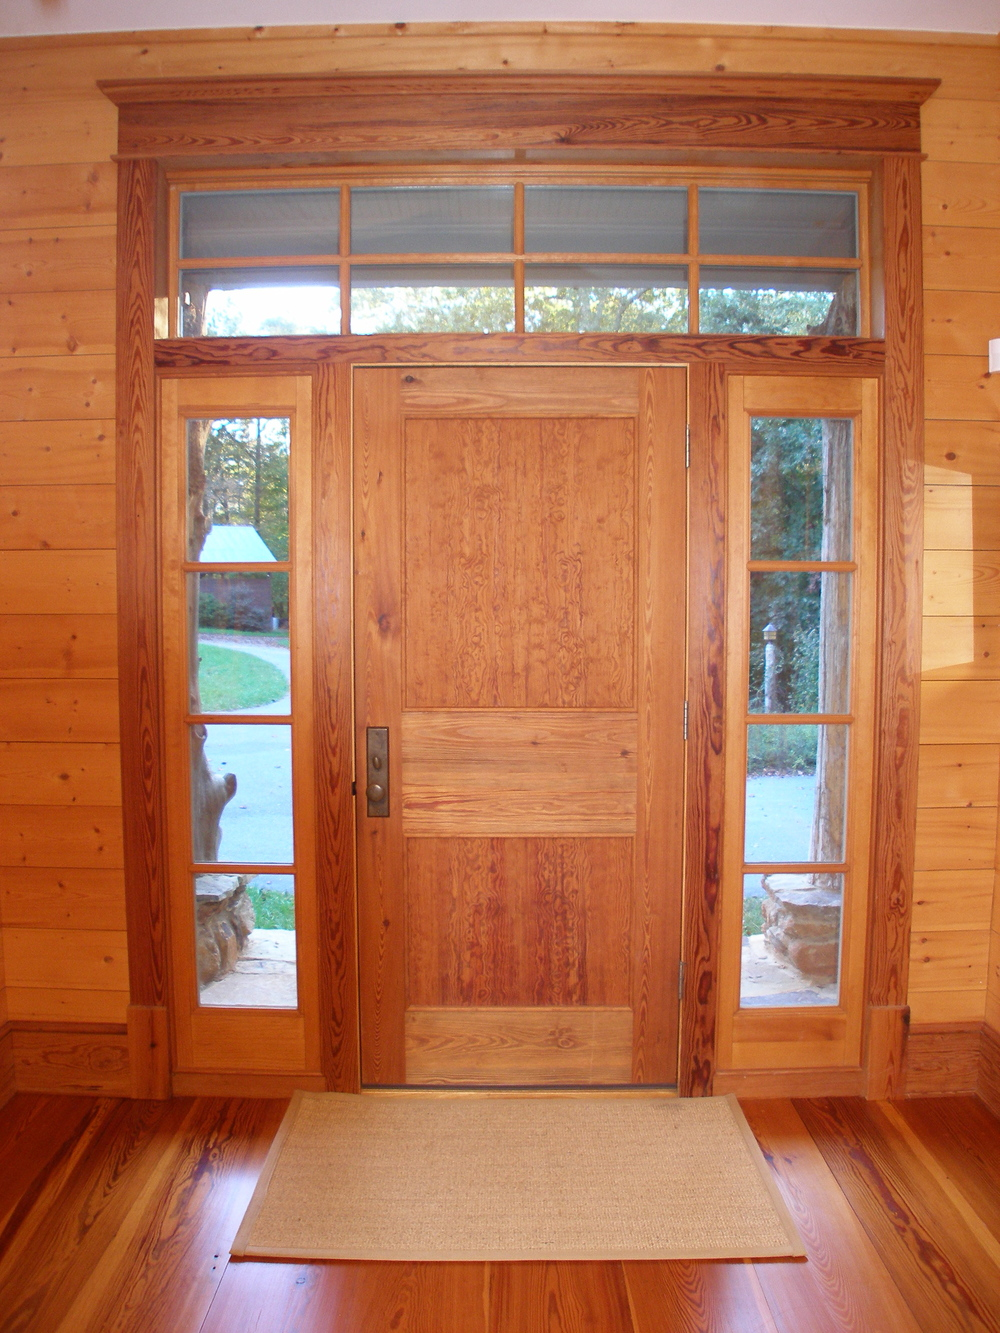 Inside of entrance door shows interior panel arrangement of curly pine panels.